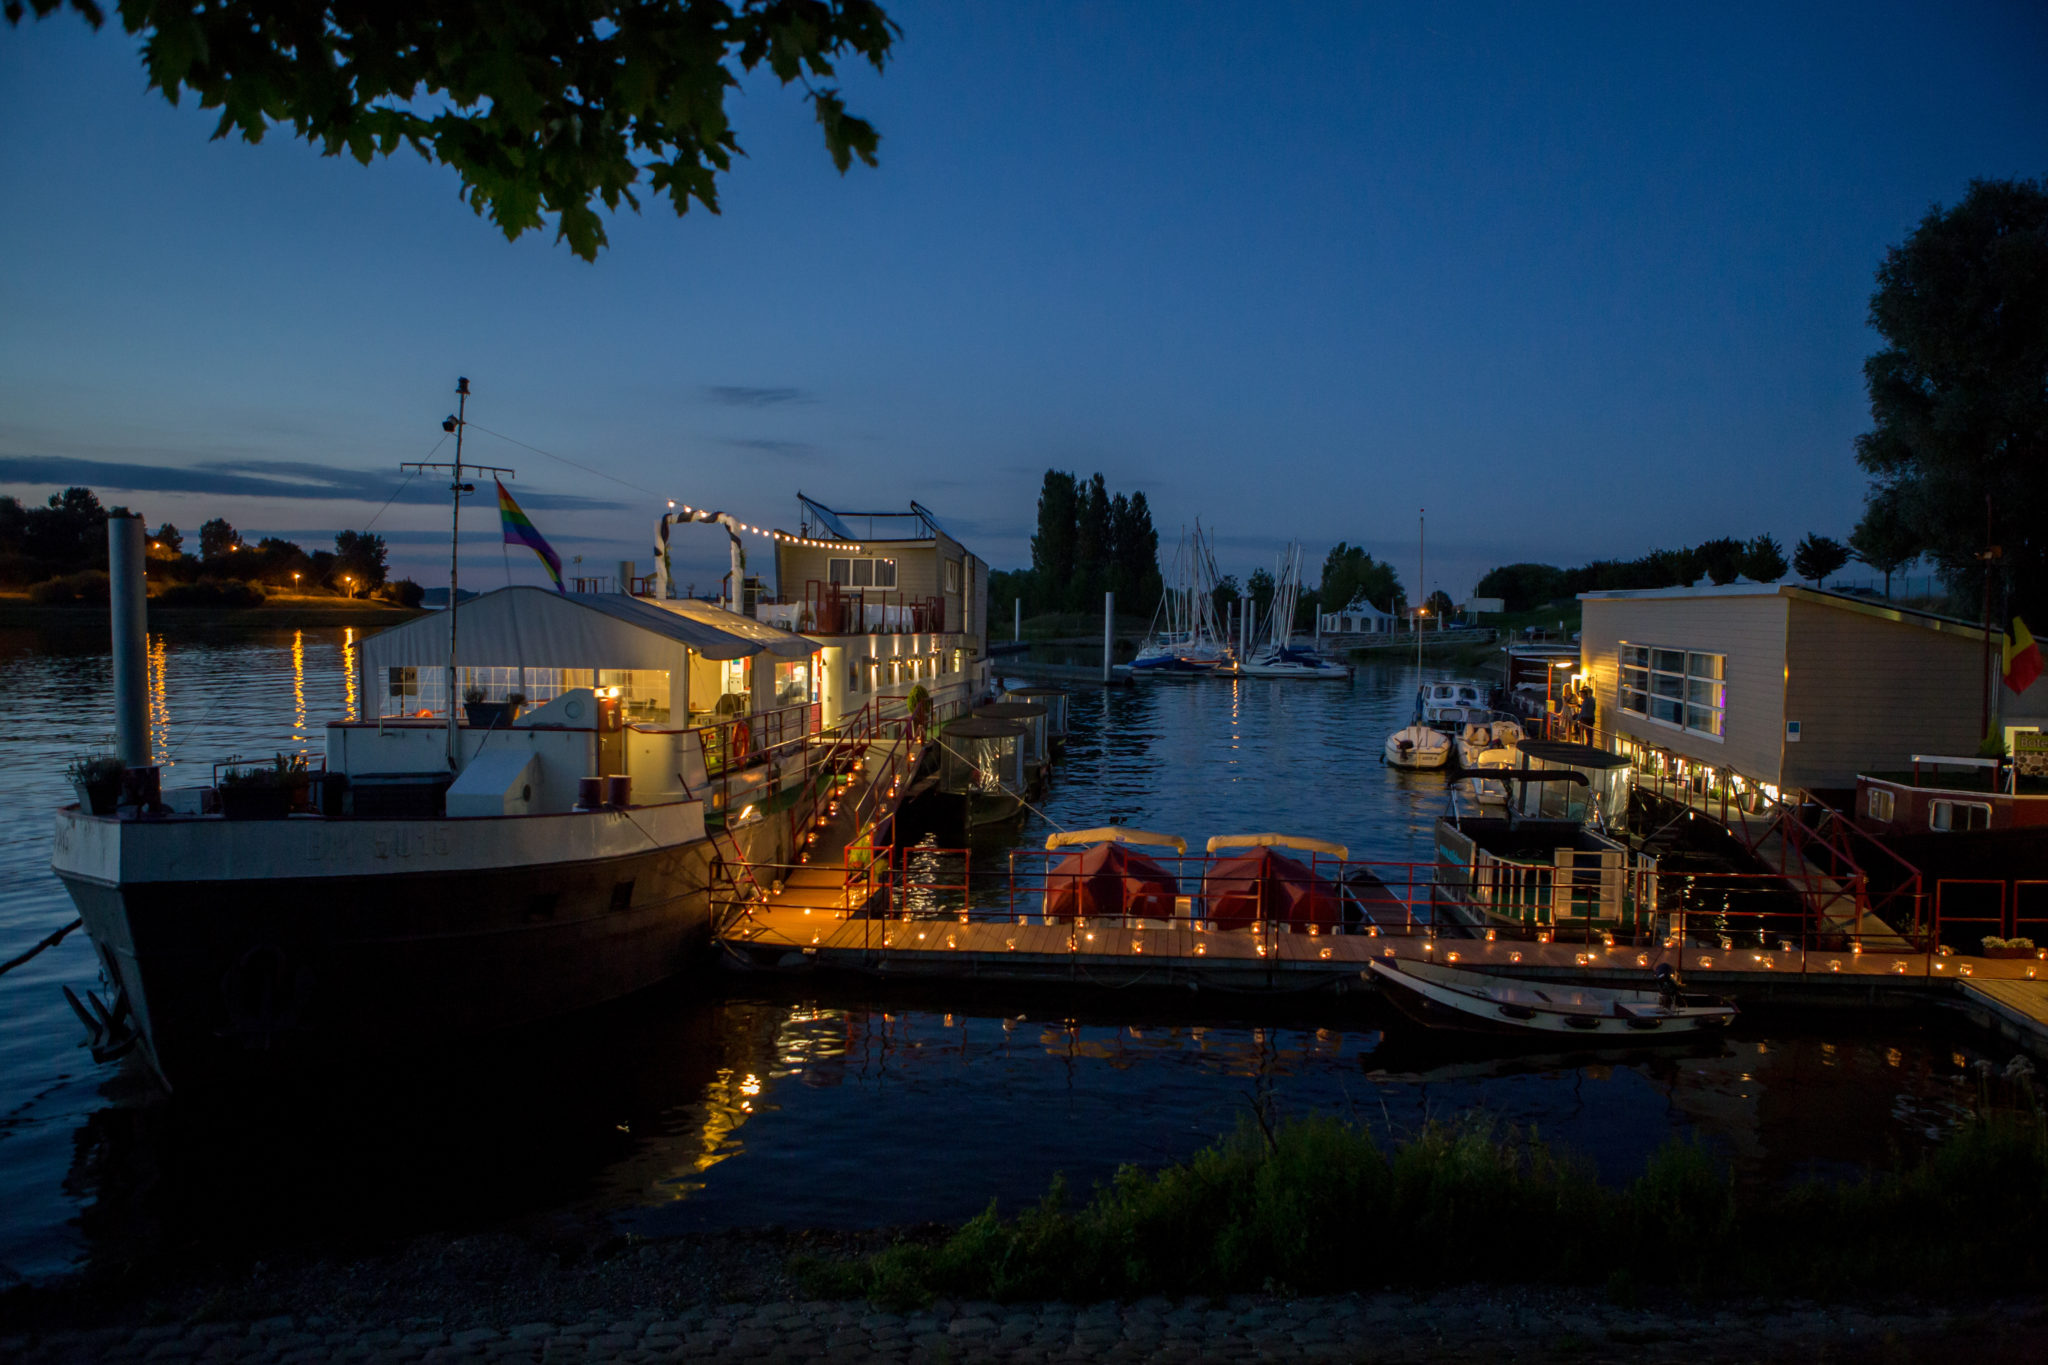 Botel Ophoven.